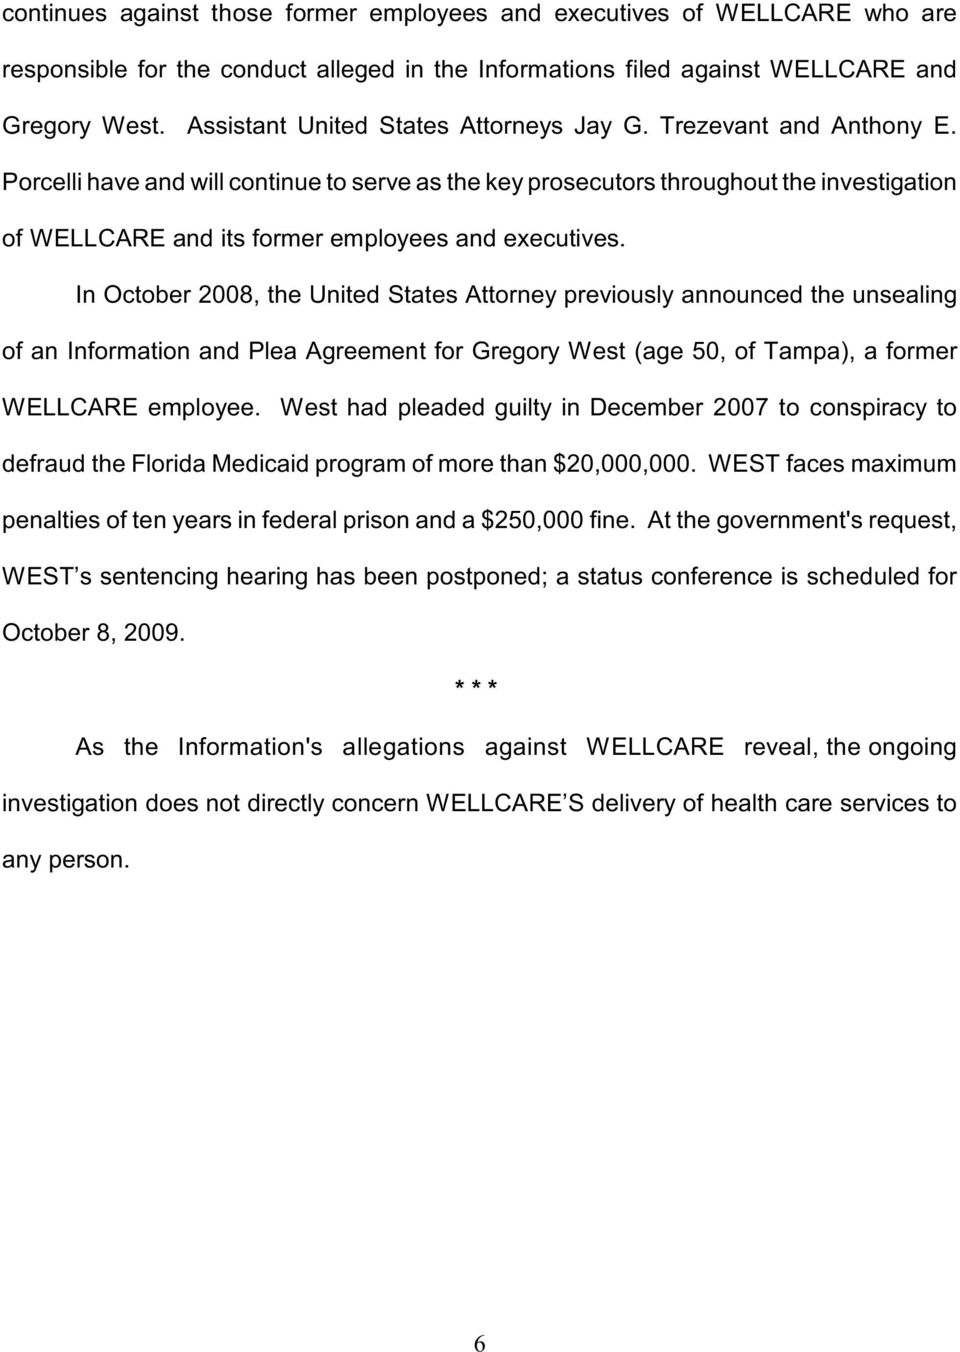 Porcelli have and will continue to serve as the key prosecutors throughout the investigation of WELLCARE and its former employees and executives.